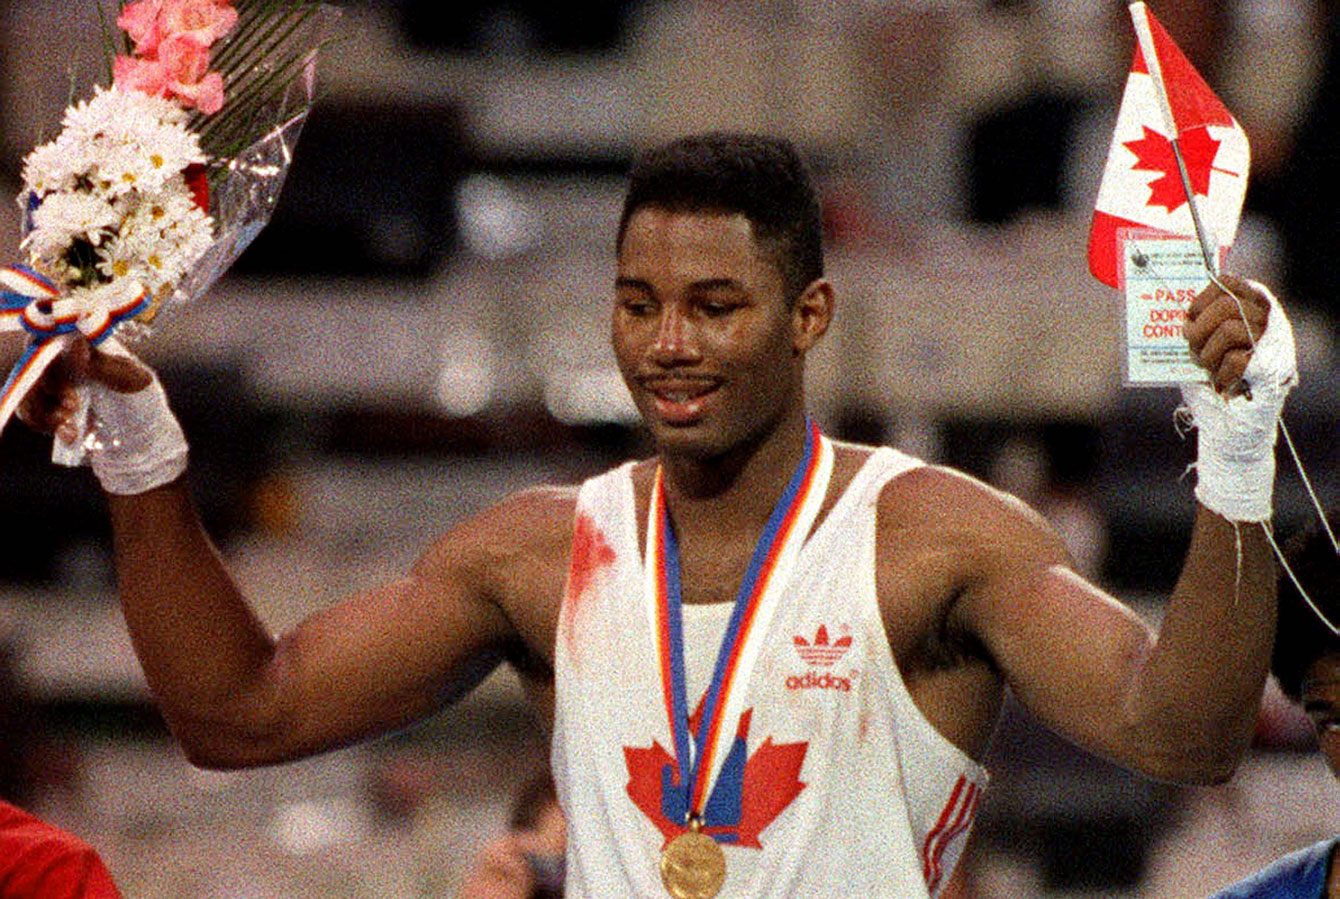 Lennox Lewis celebrates his Olympic gold medal.